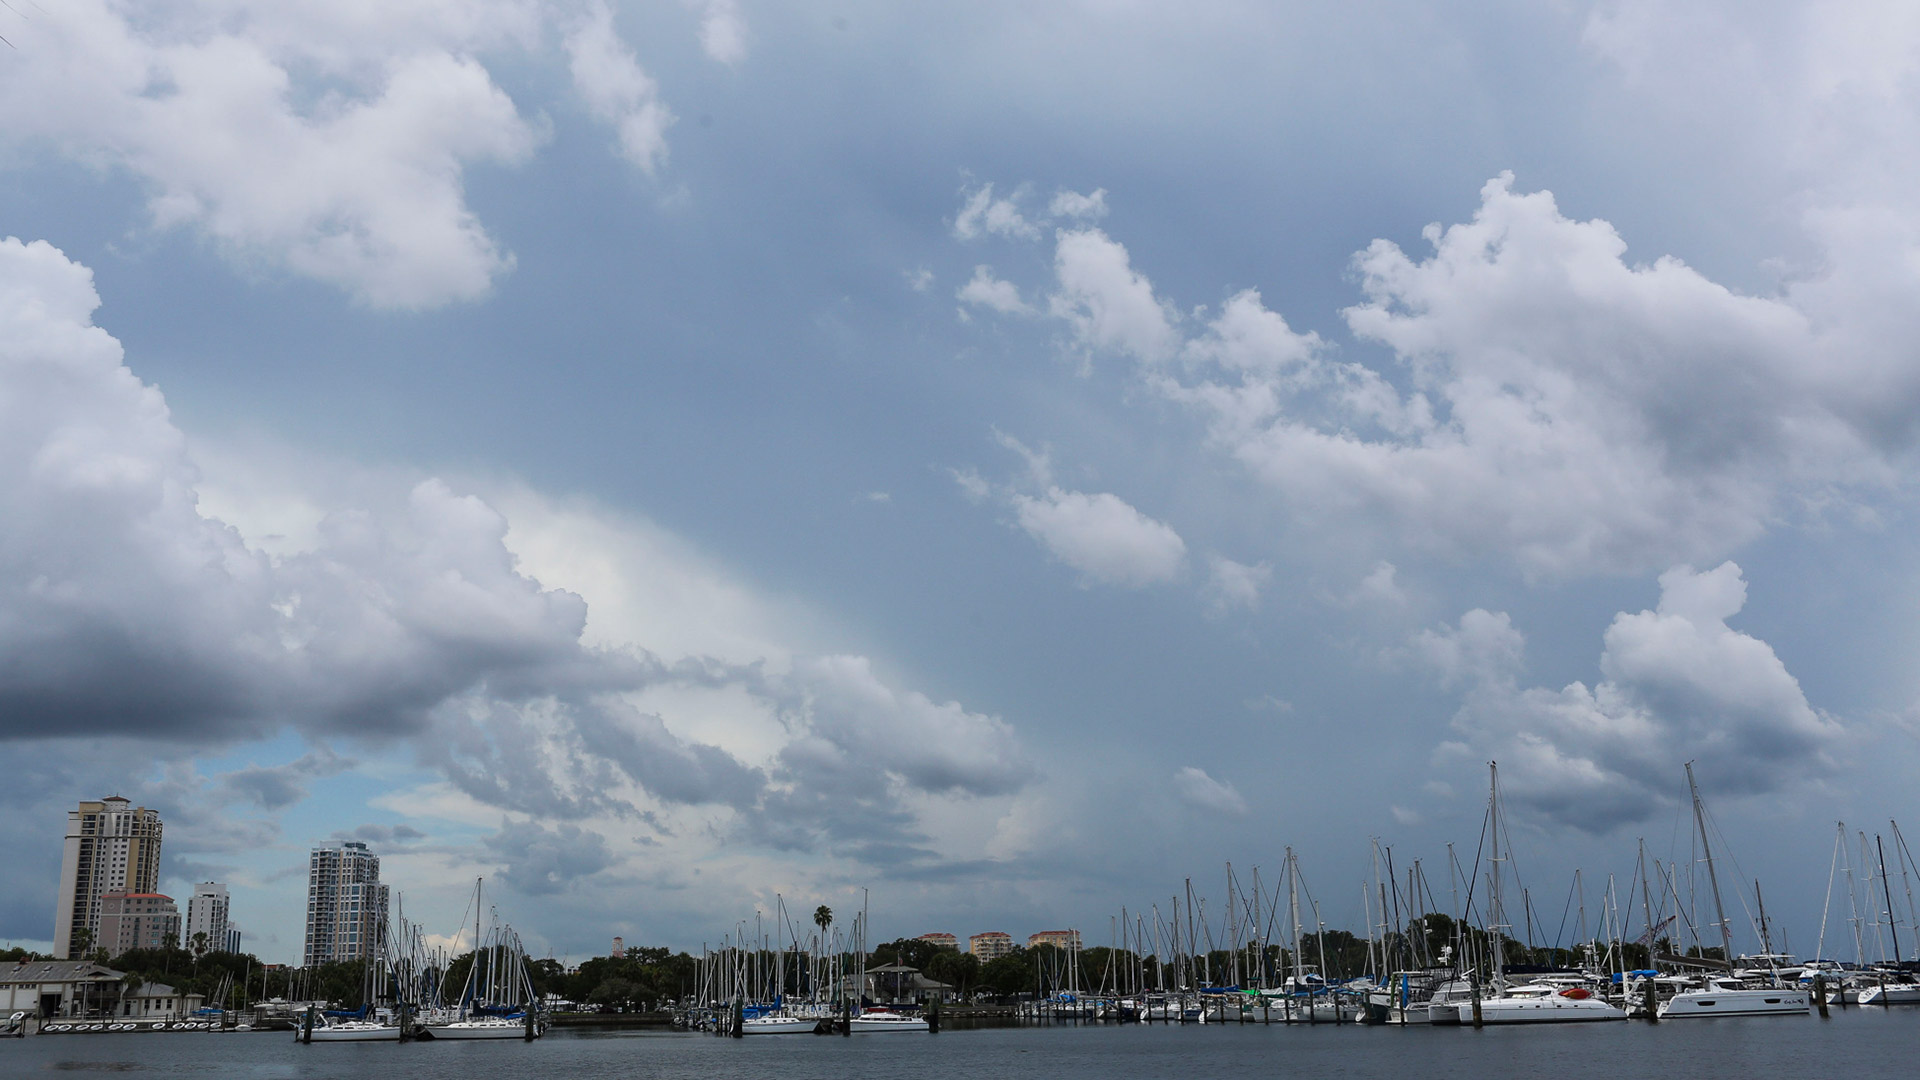 A major storm could destroy Tampa Bay. People should be more worried.